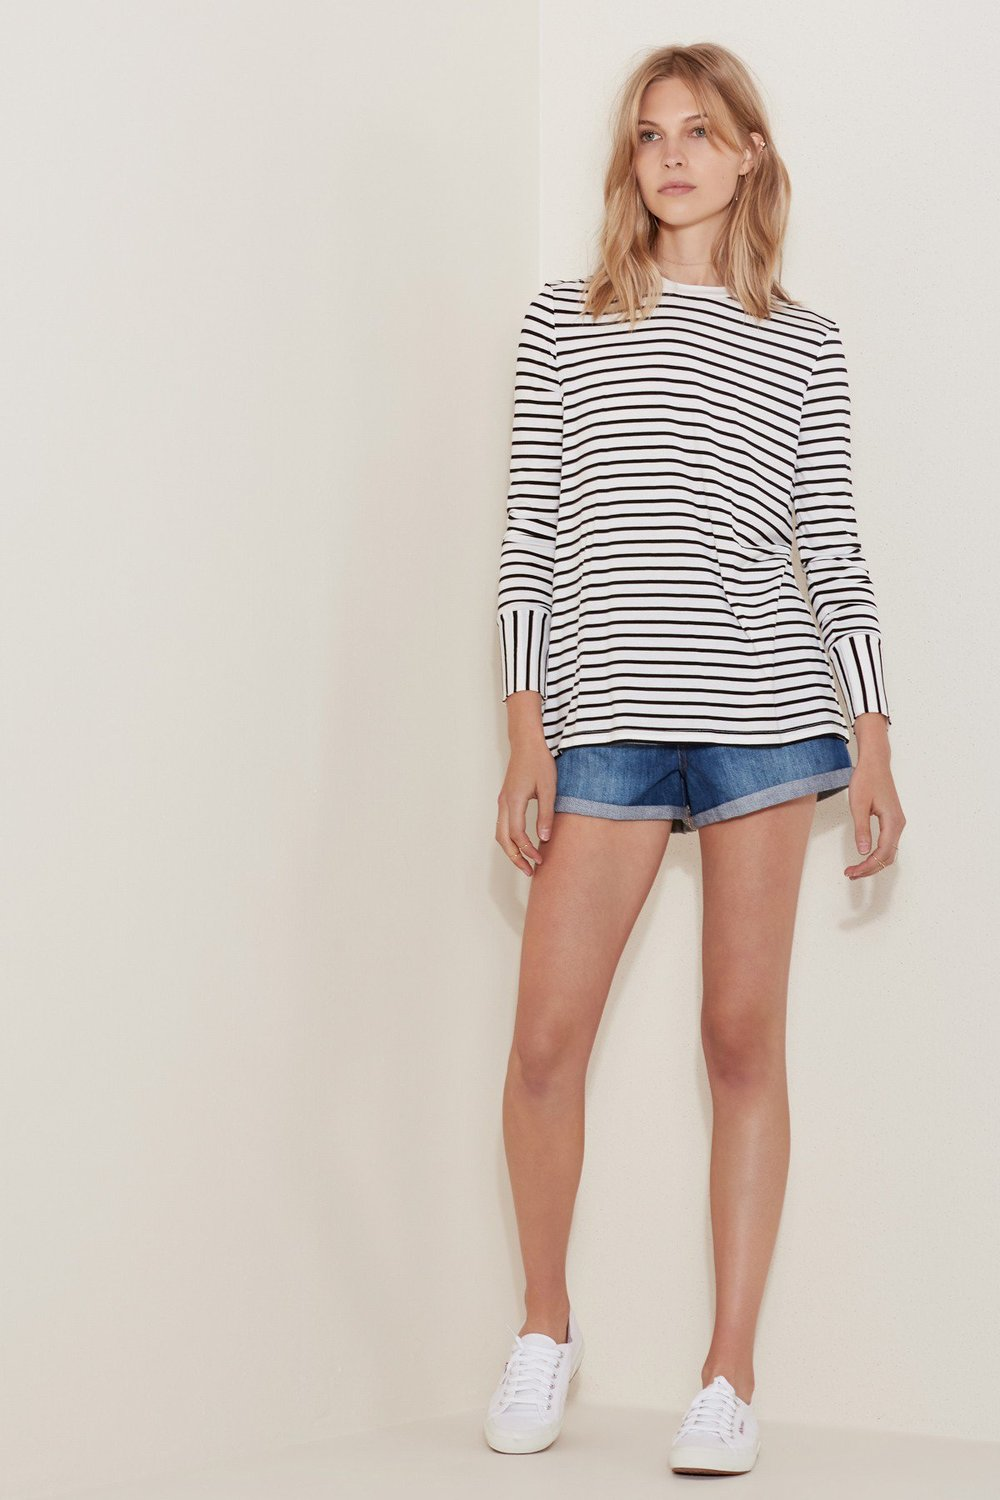 Shop  The Fifth Shine By Long Sleeve Top  +  High Roller Short .